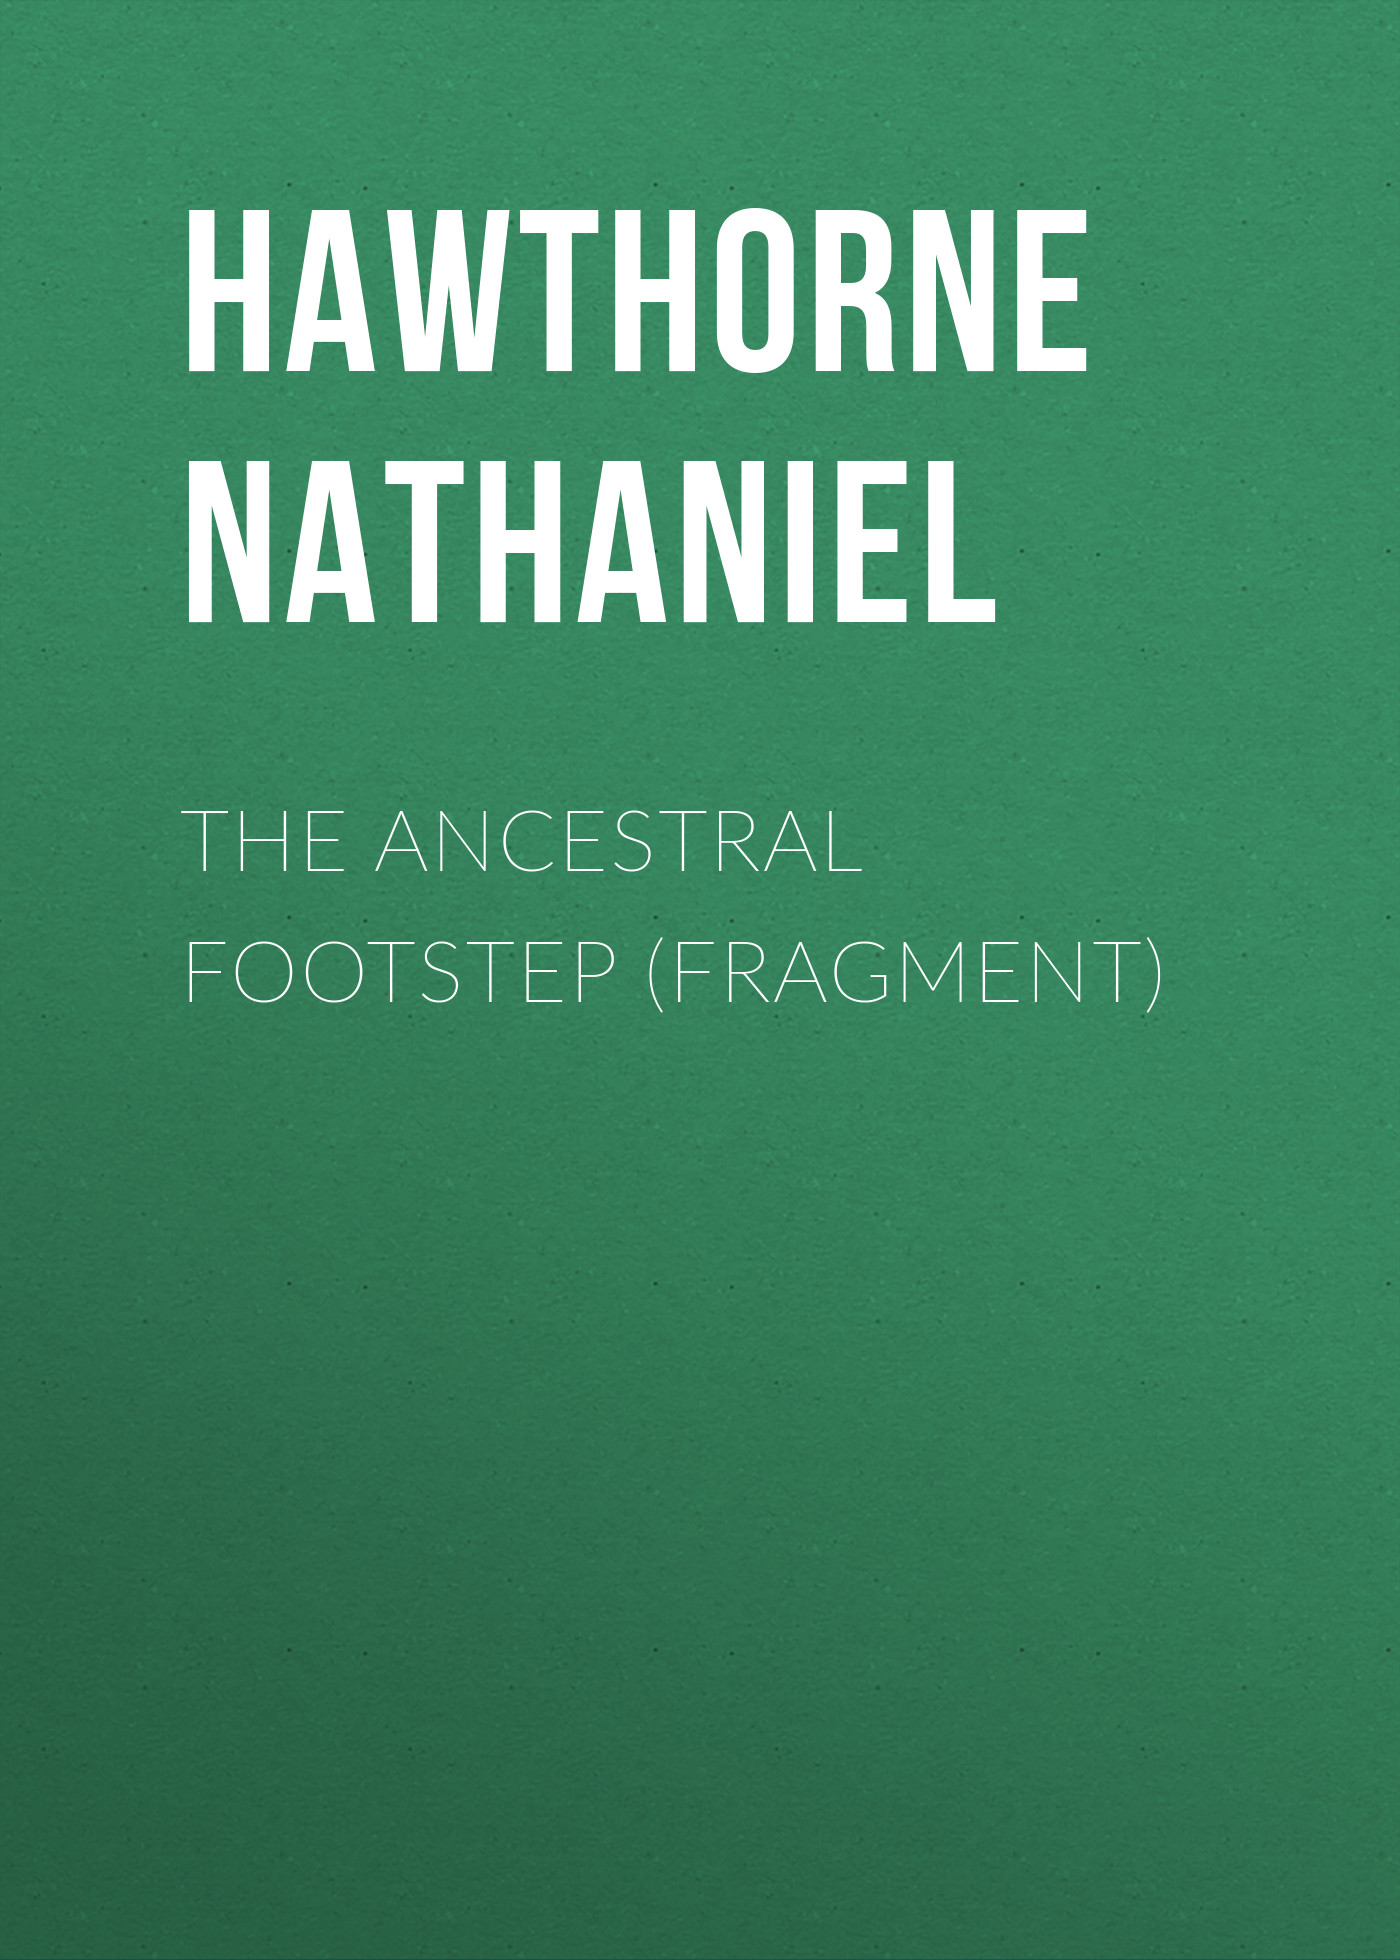 Hawthorne Nathaniel The Ancestral Footstep (fragment) ancestral knowledge